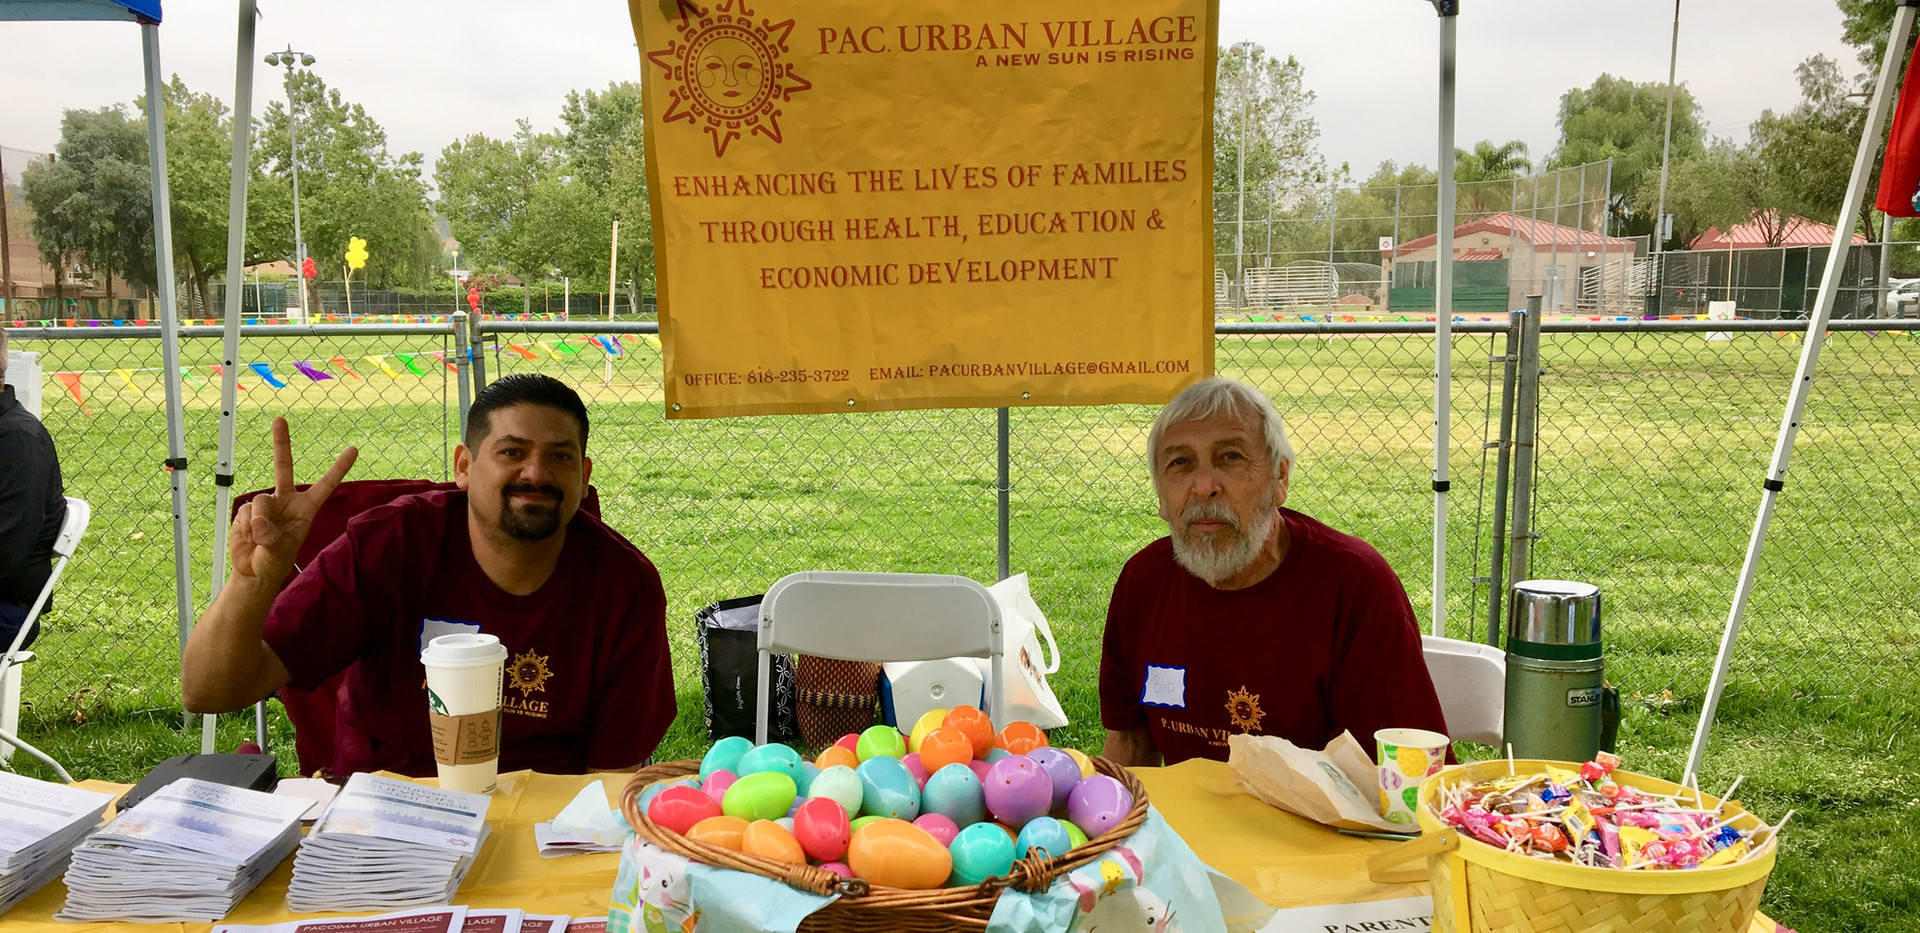 Che Che and Bob, PUV Board Members working the 2019 Easter Event at Las Palmas Park